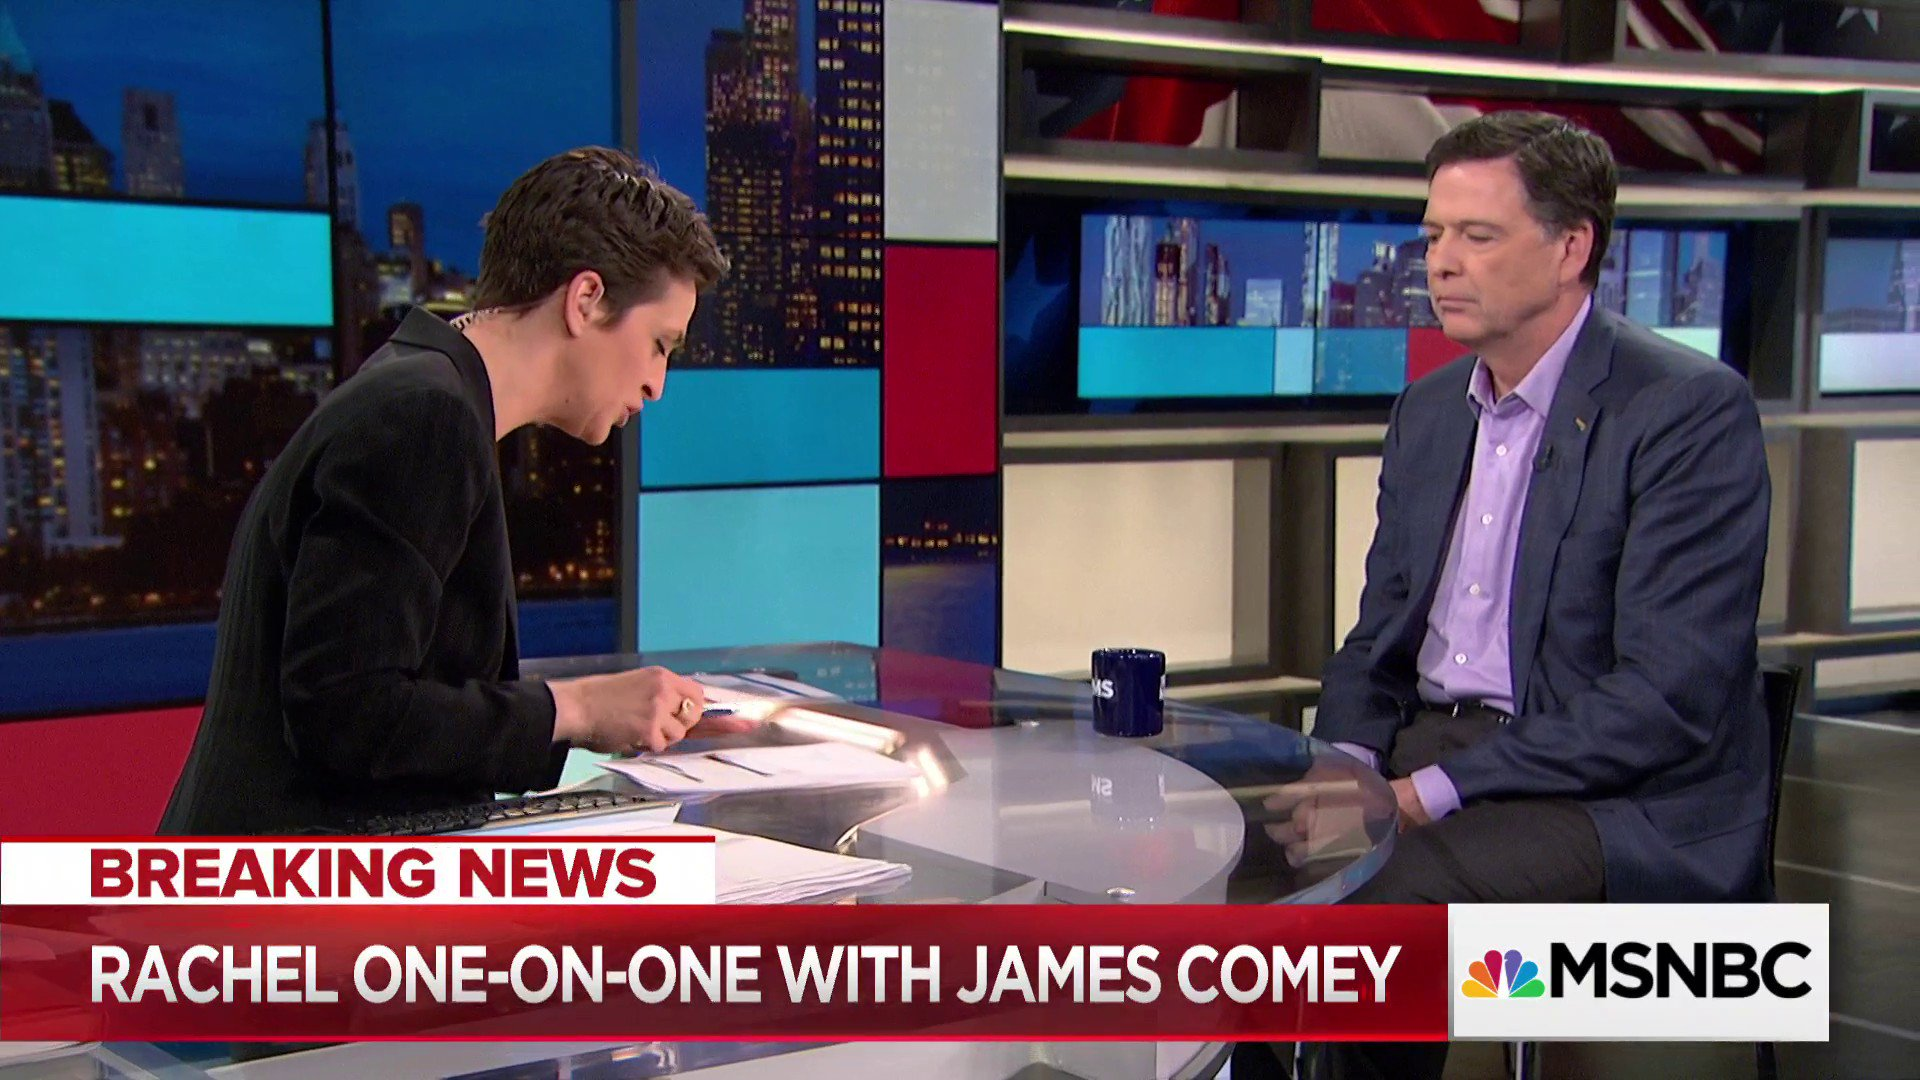 James Comey joins @Maddow LIVE in studio now, only on @MSNBC https://t.co/qJTUiaLH7p